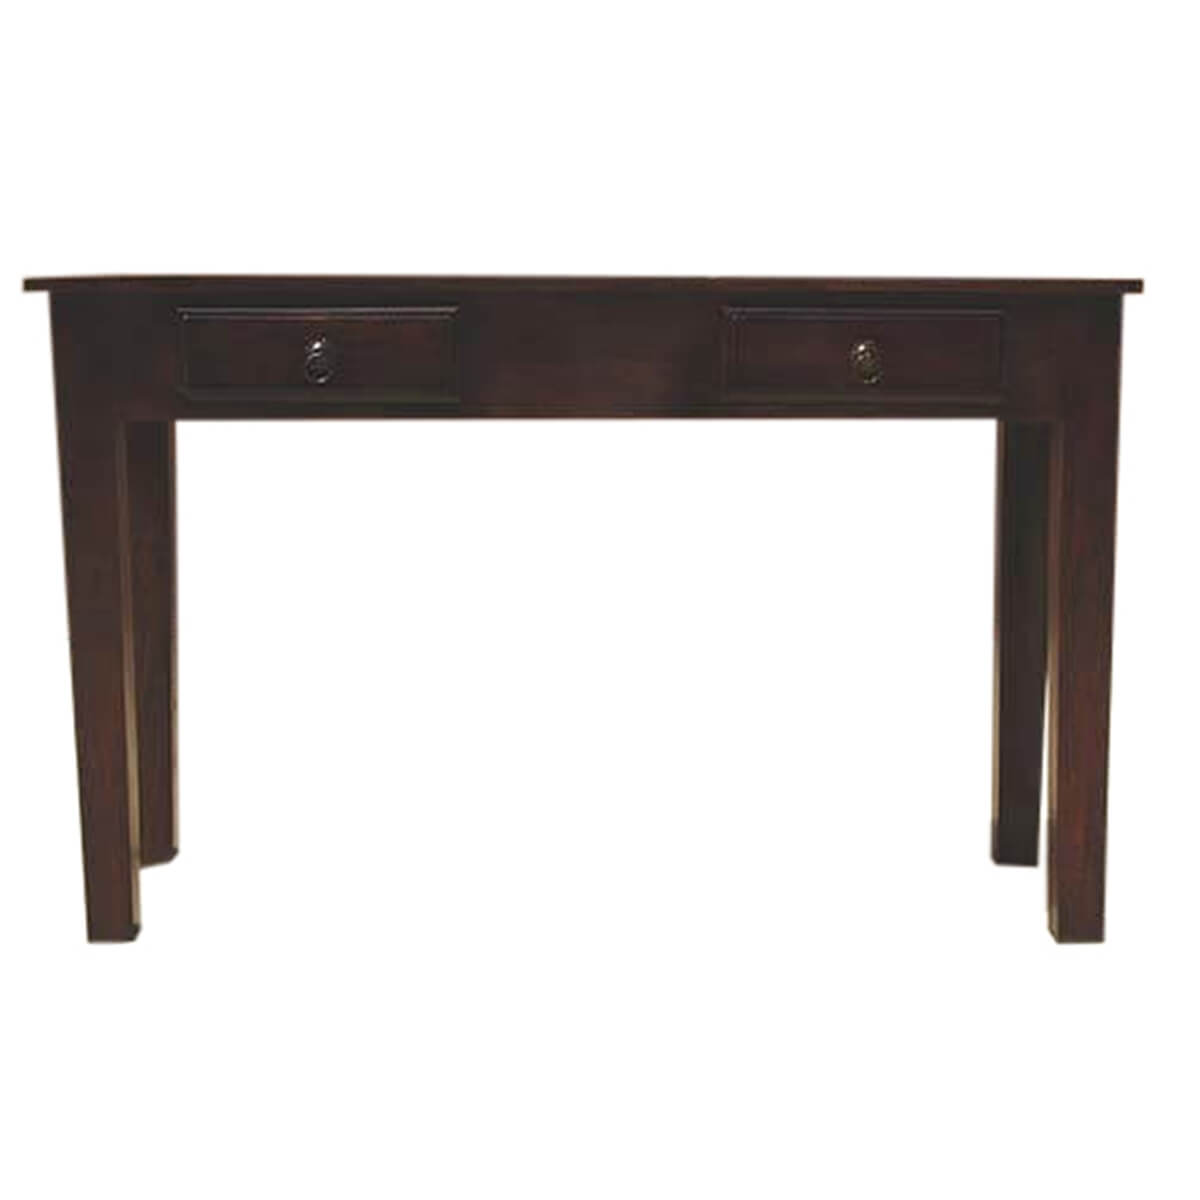 Foyer Table Drawers : Wood storage drawers console hall entry way foyer table